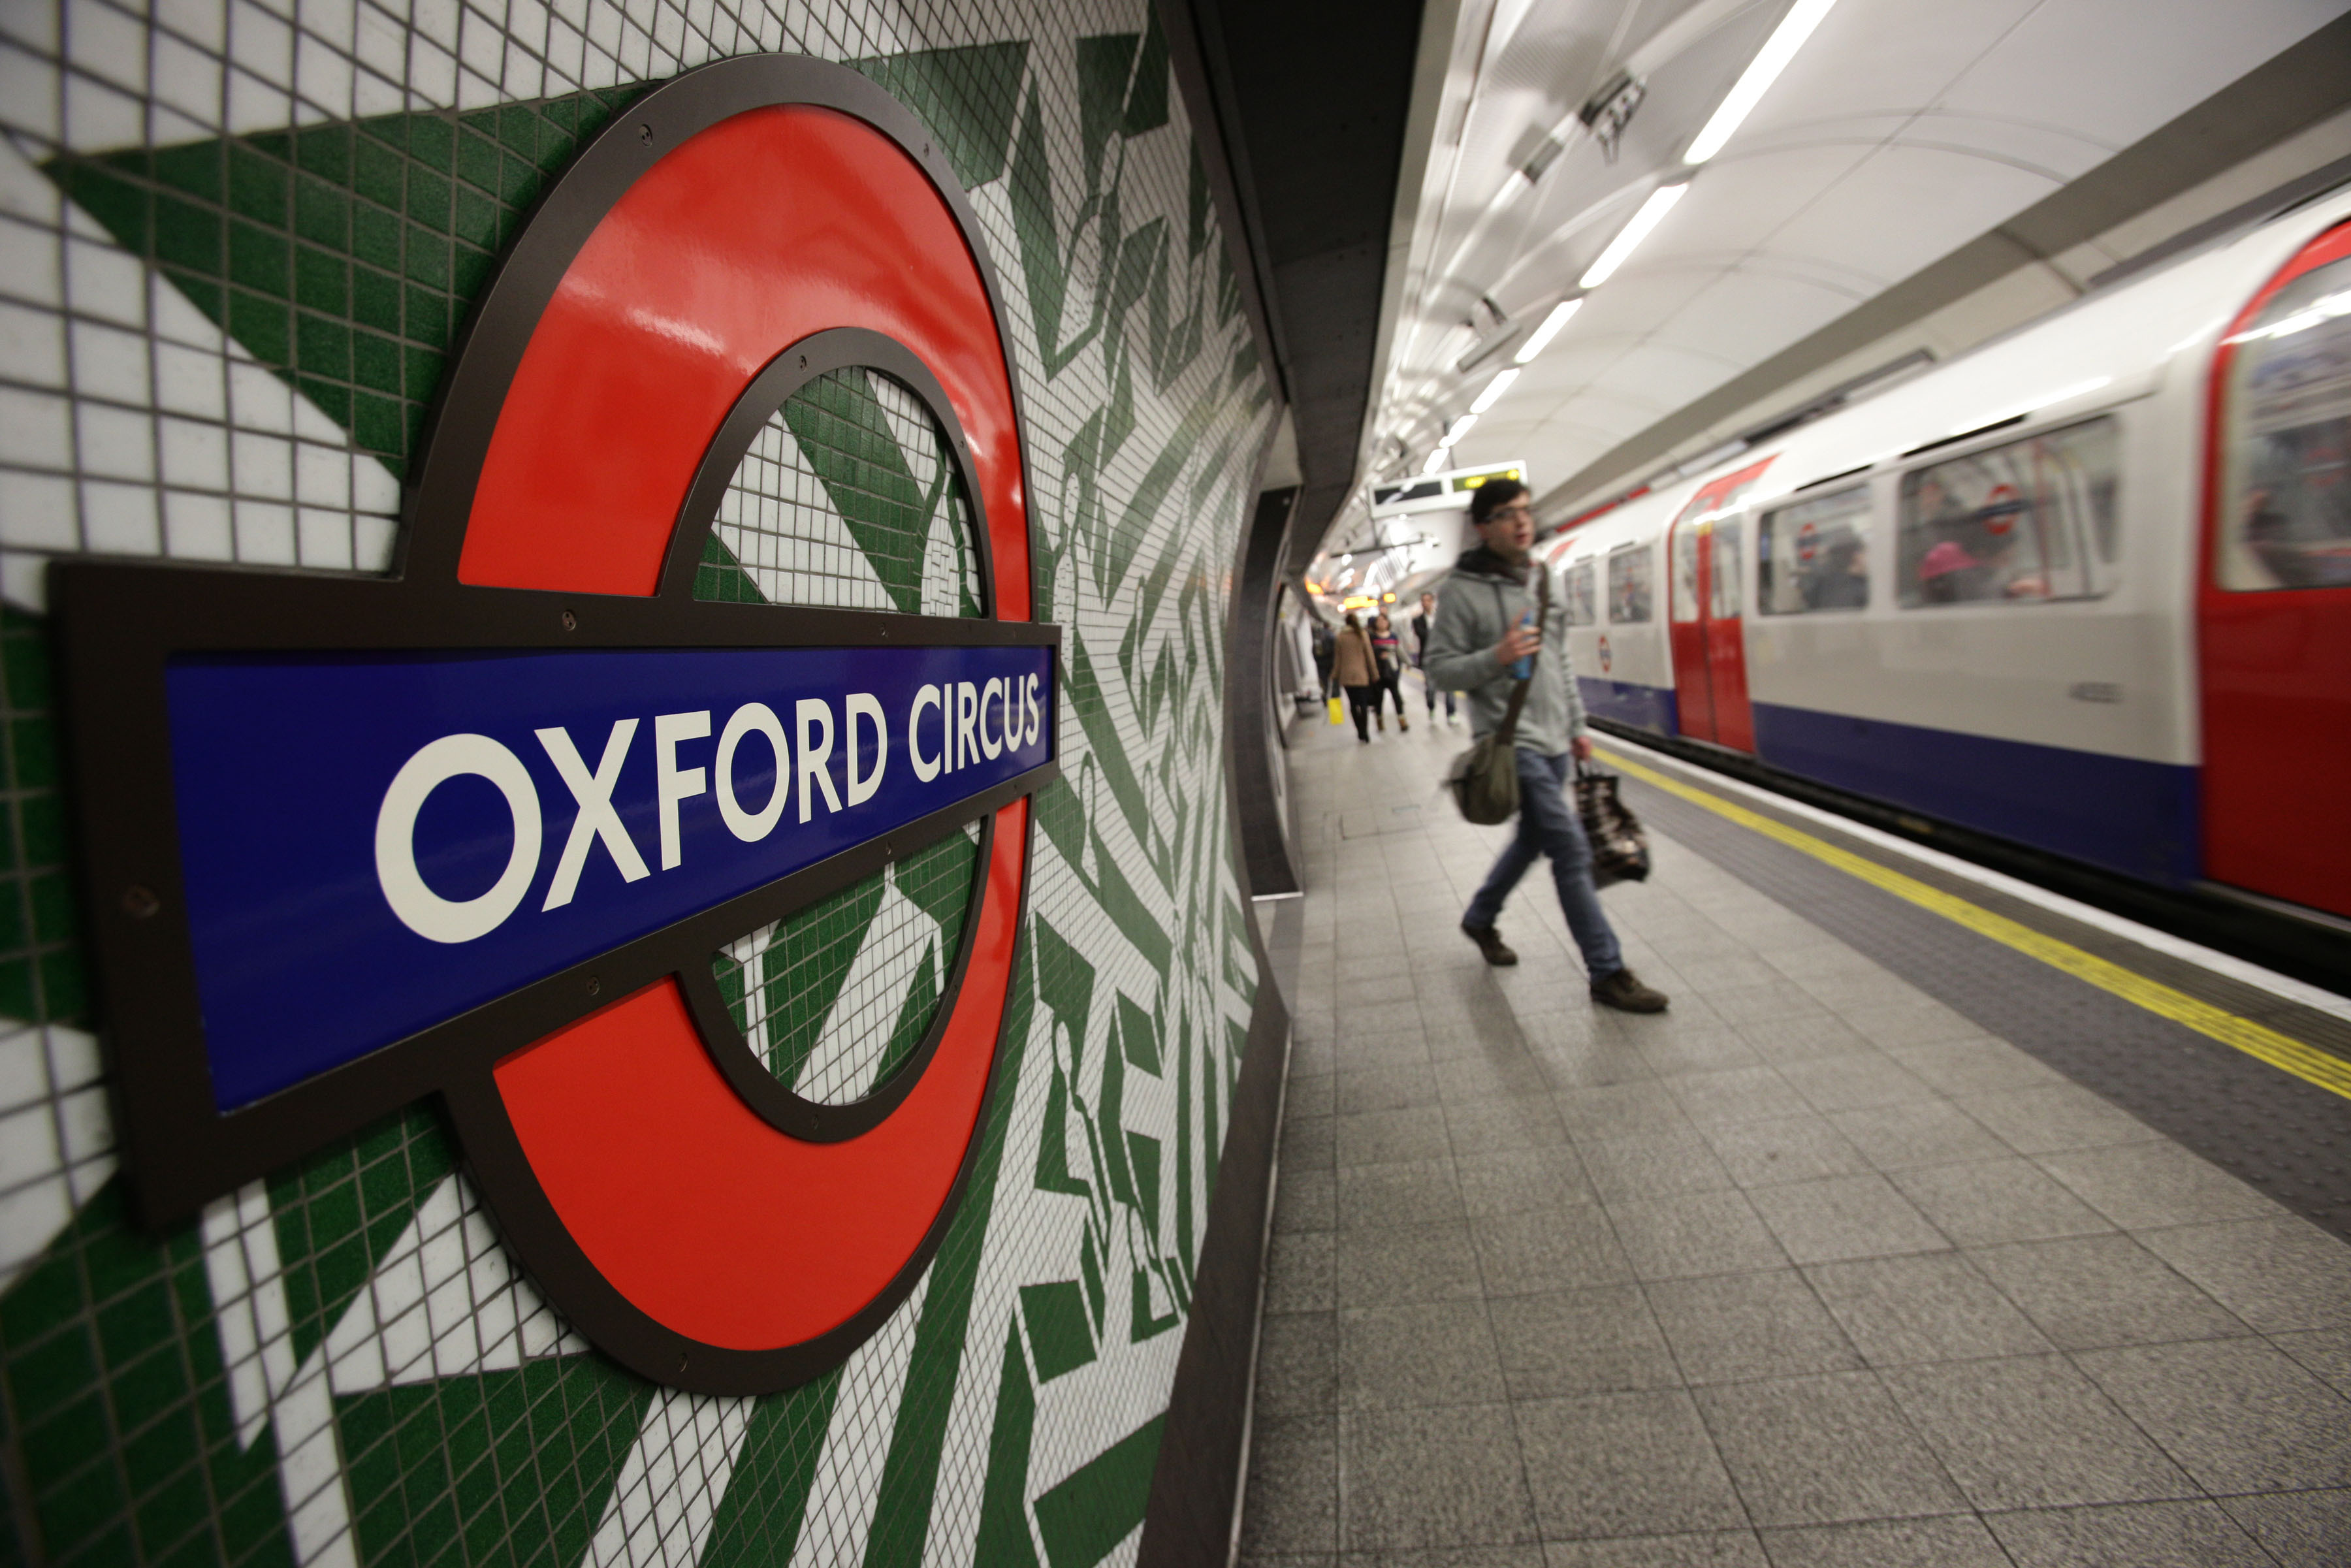 Tube promises 24-hour weekend service as unions declare war over job cuts